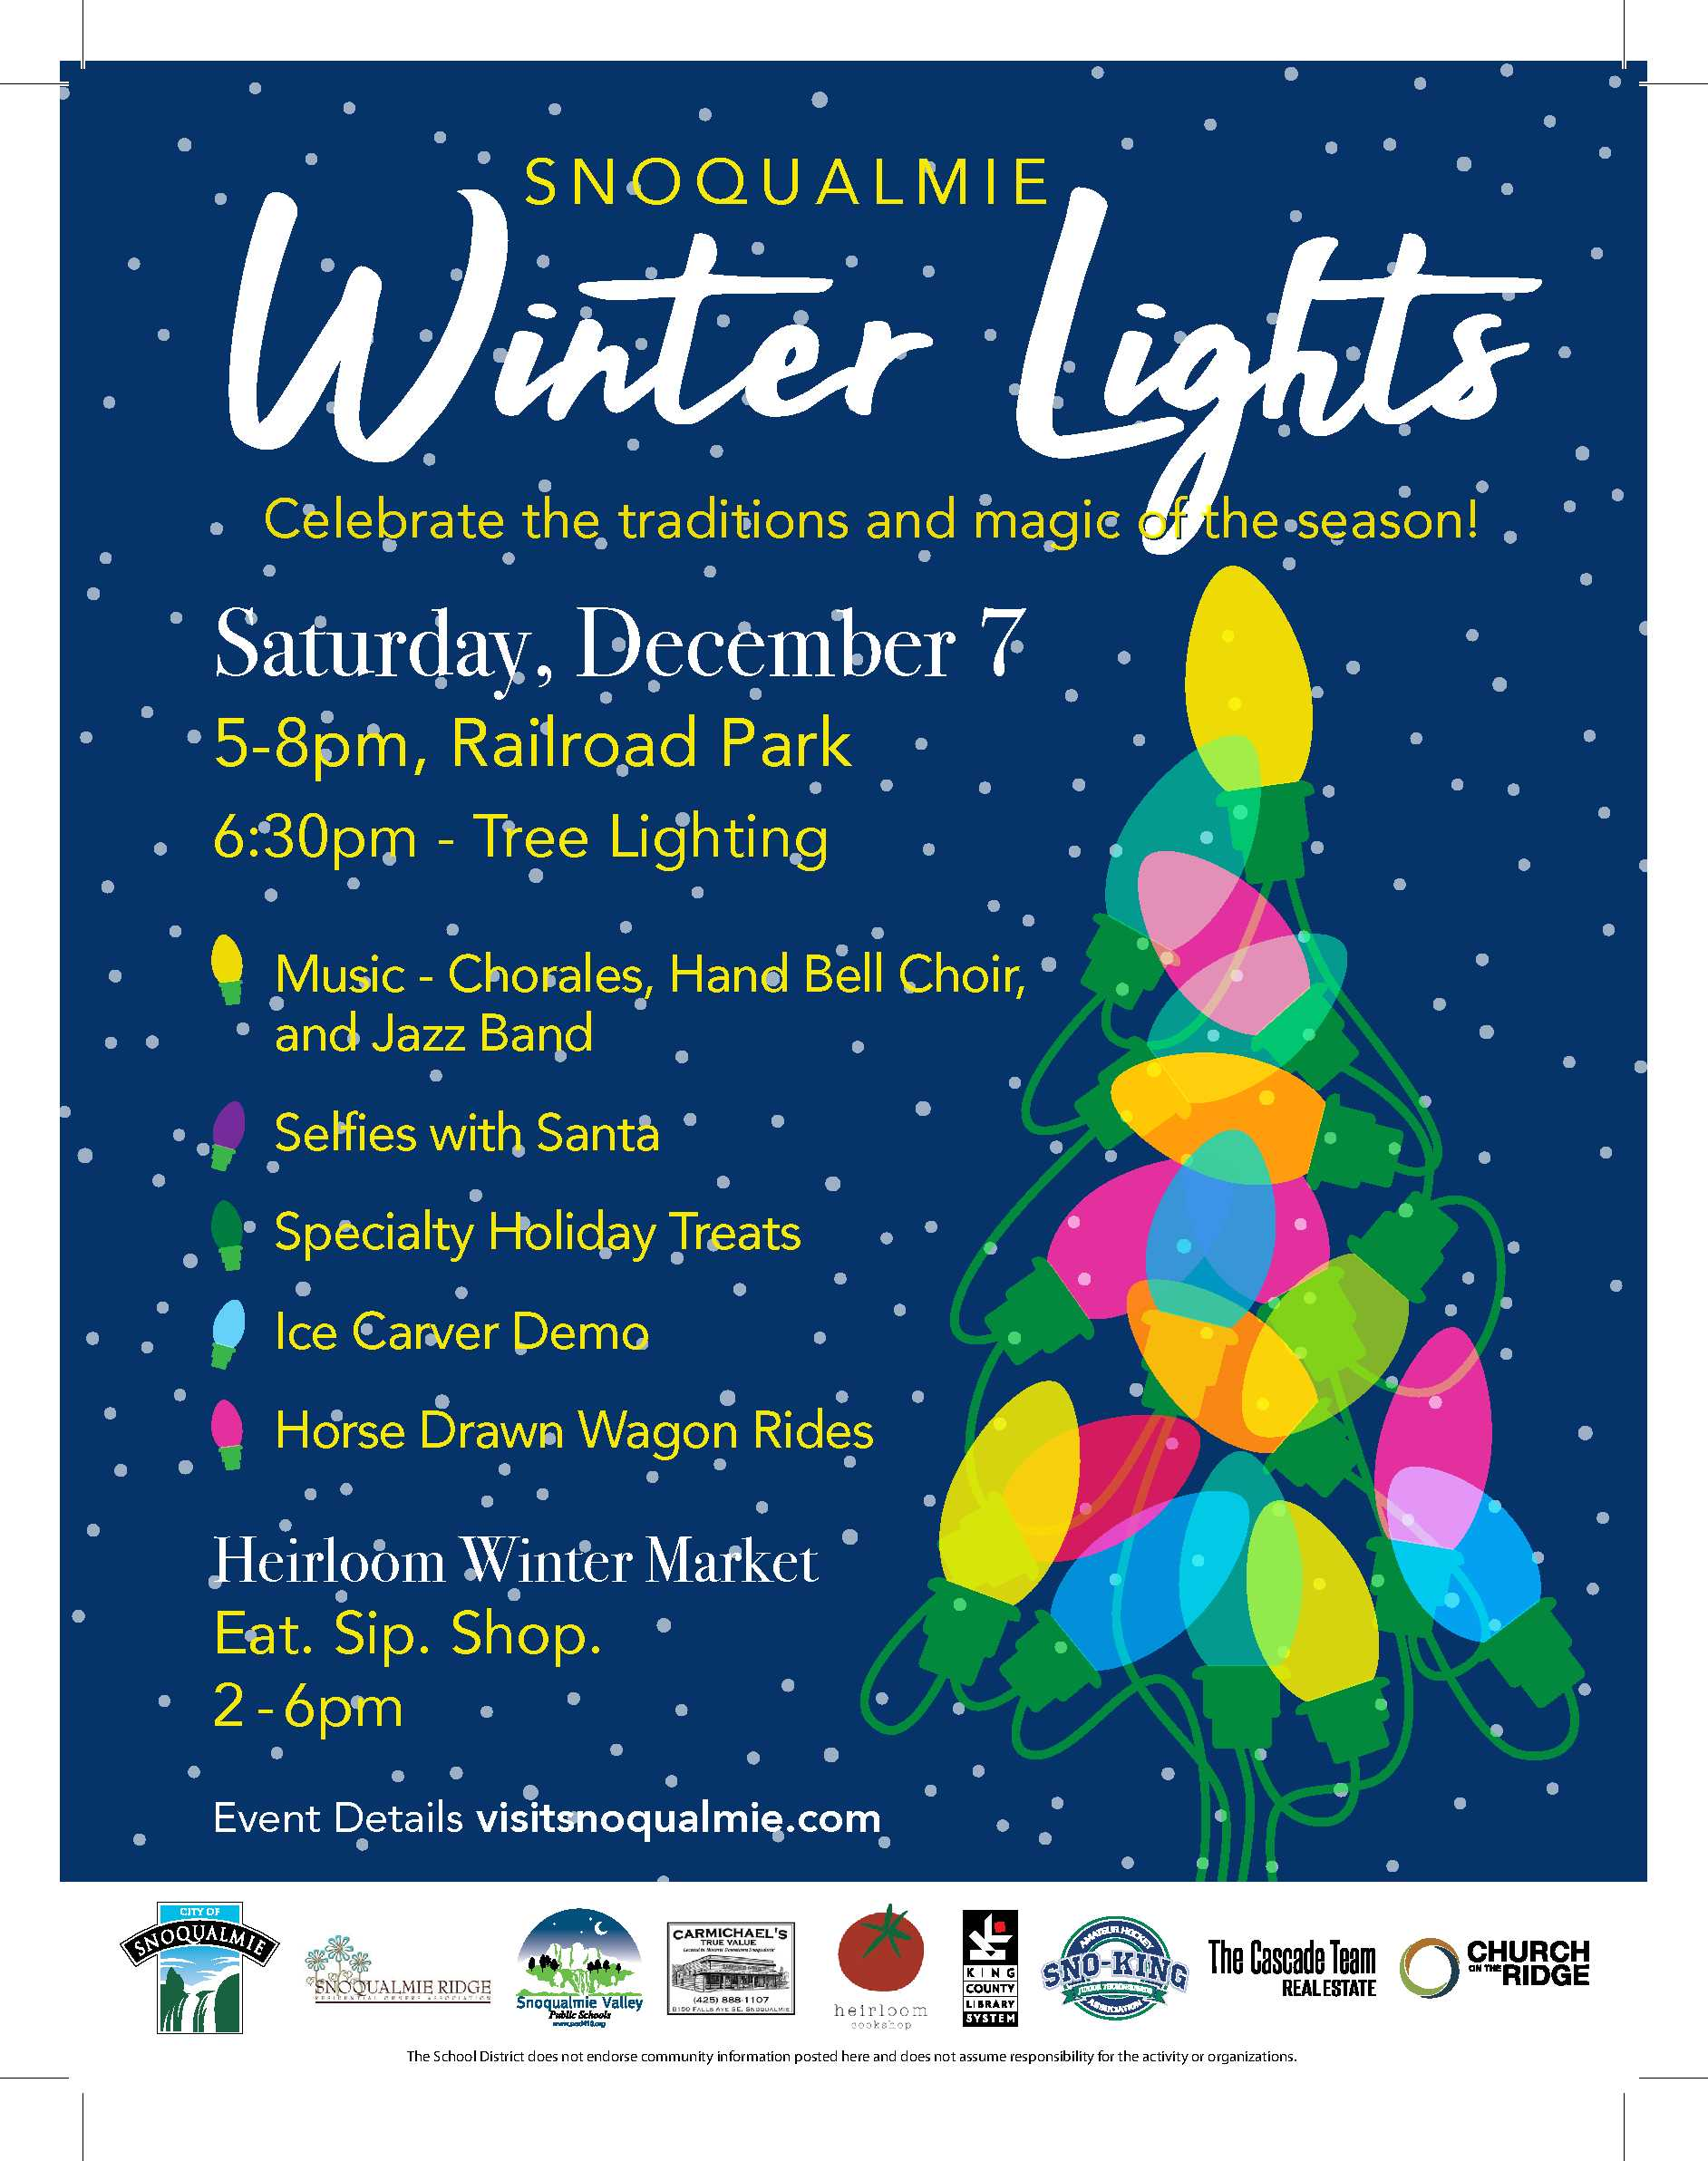 2019 Snoqualmie Winter Lights Flyer